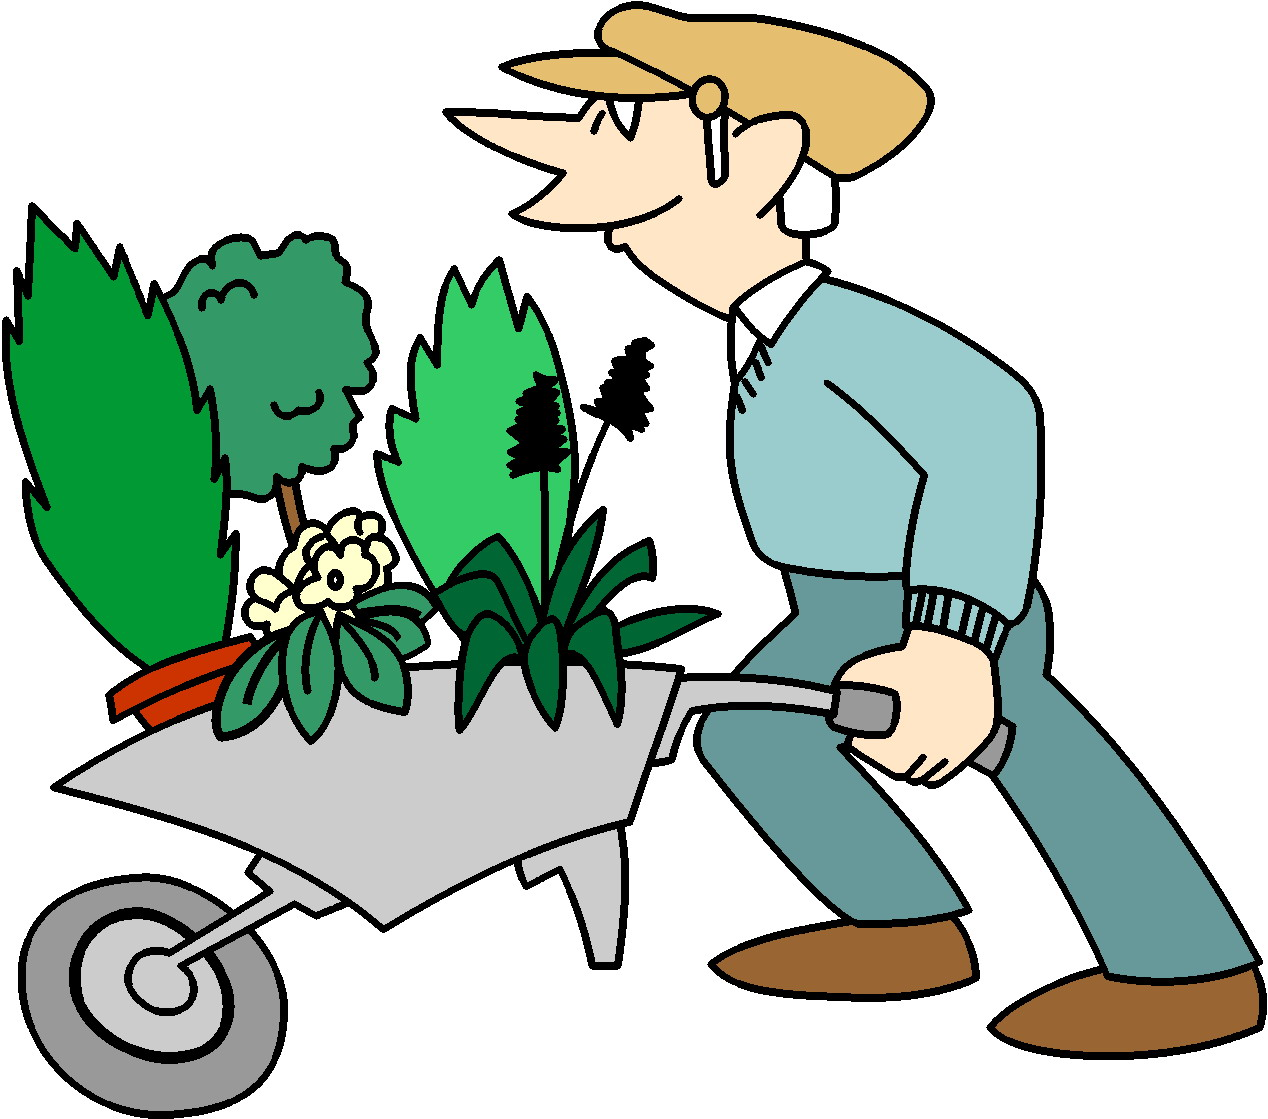 Clipart grdening clipart royalty free library Free Gardener Pictures, Download Free Clip Art, Free Clip Art on ... clipart royalty free library